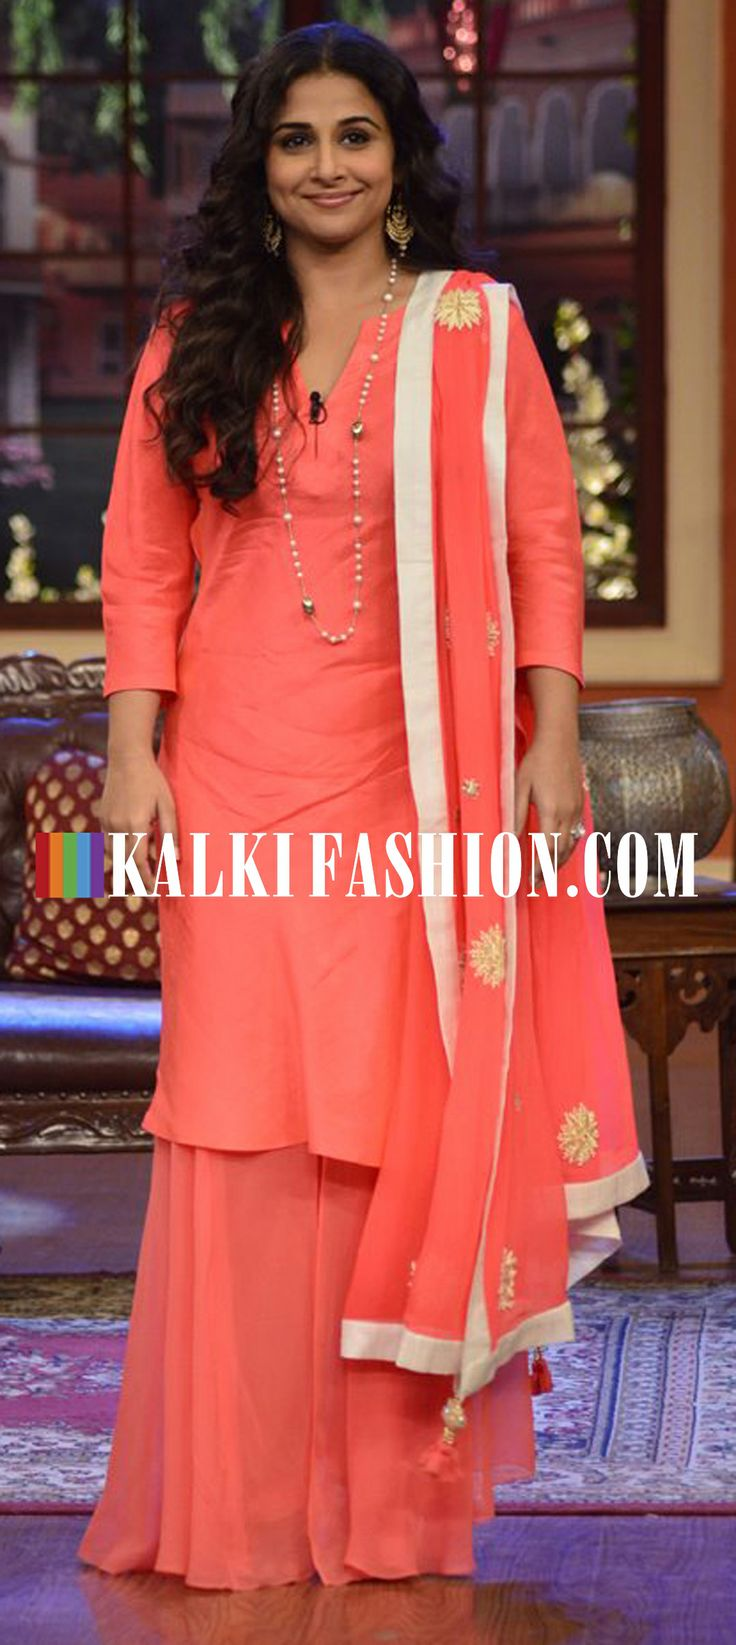 Vidya Balan in a peach suit with palazzo pant at Comedy Nights with Kapil show to promote her upcoming movie Bobby Jasoos. http://www.kalkifashion.com/